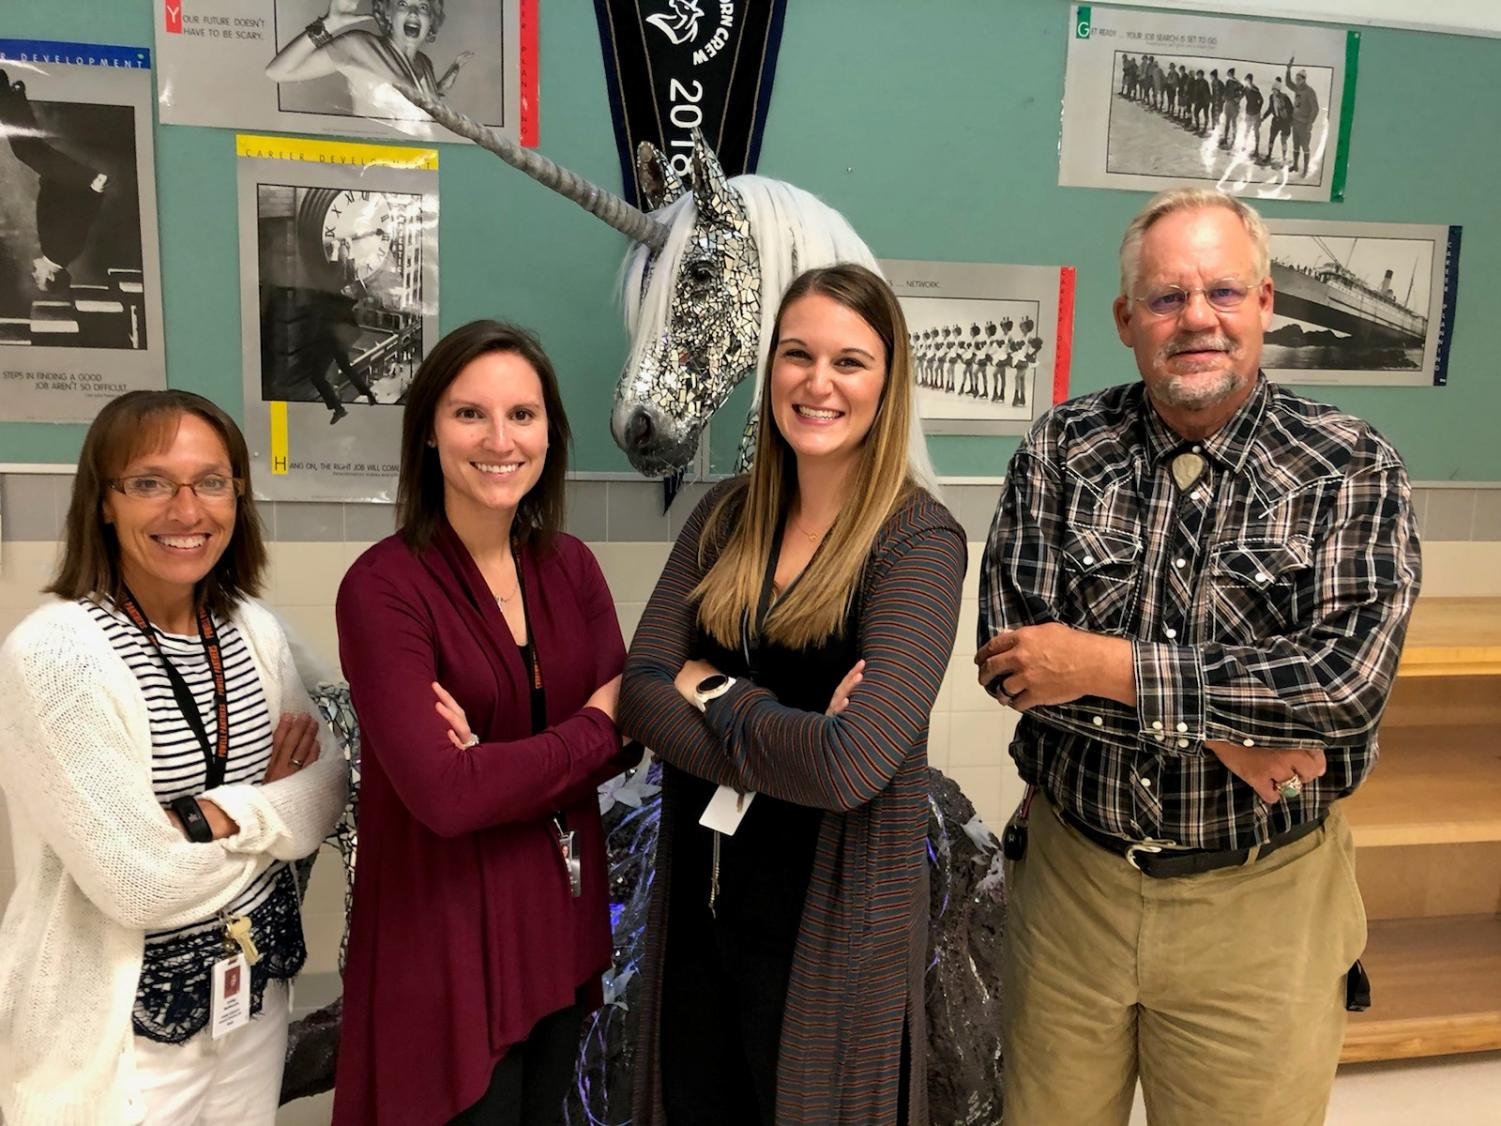 The new PHS staff members pose for a picture. (From left) Mrs. Cathy McKenzie, Mrs. Kallie Papich, Mrs. Kaitlin Loeffen and Mr. Jerry Bellmeyer.